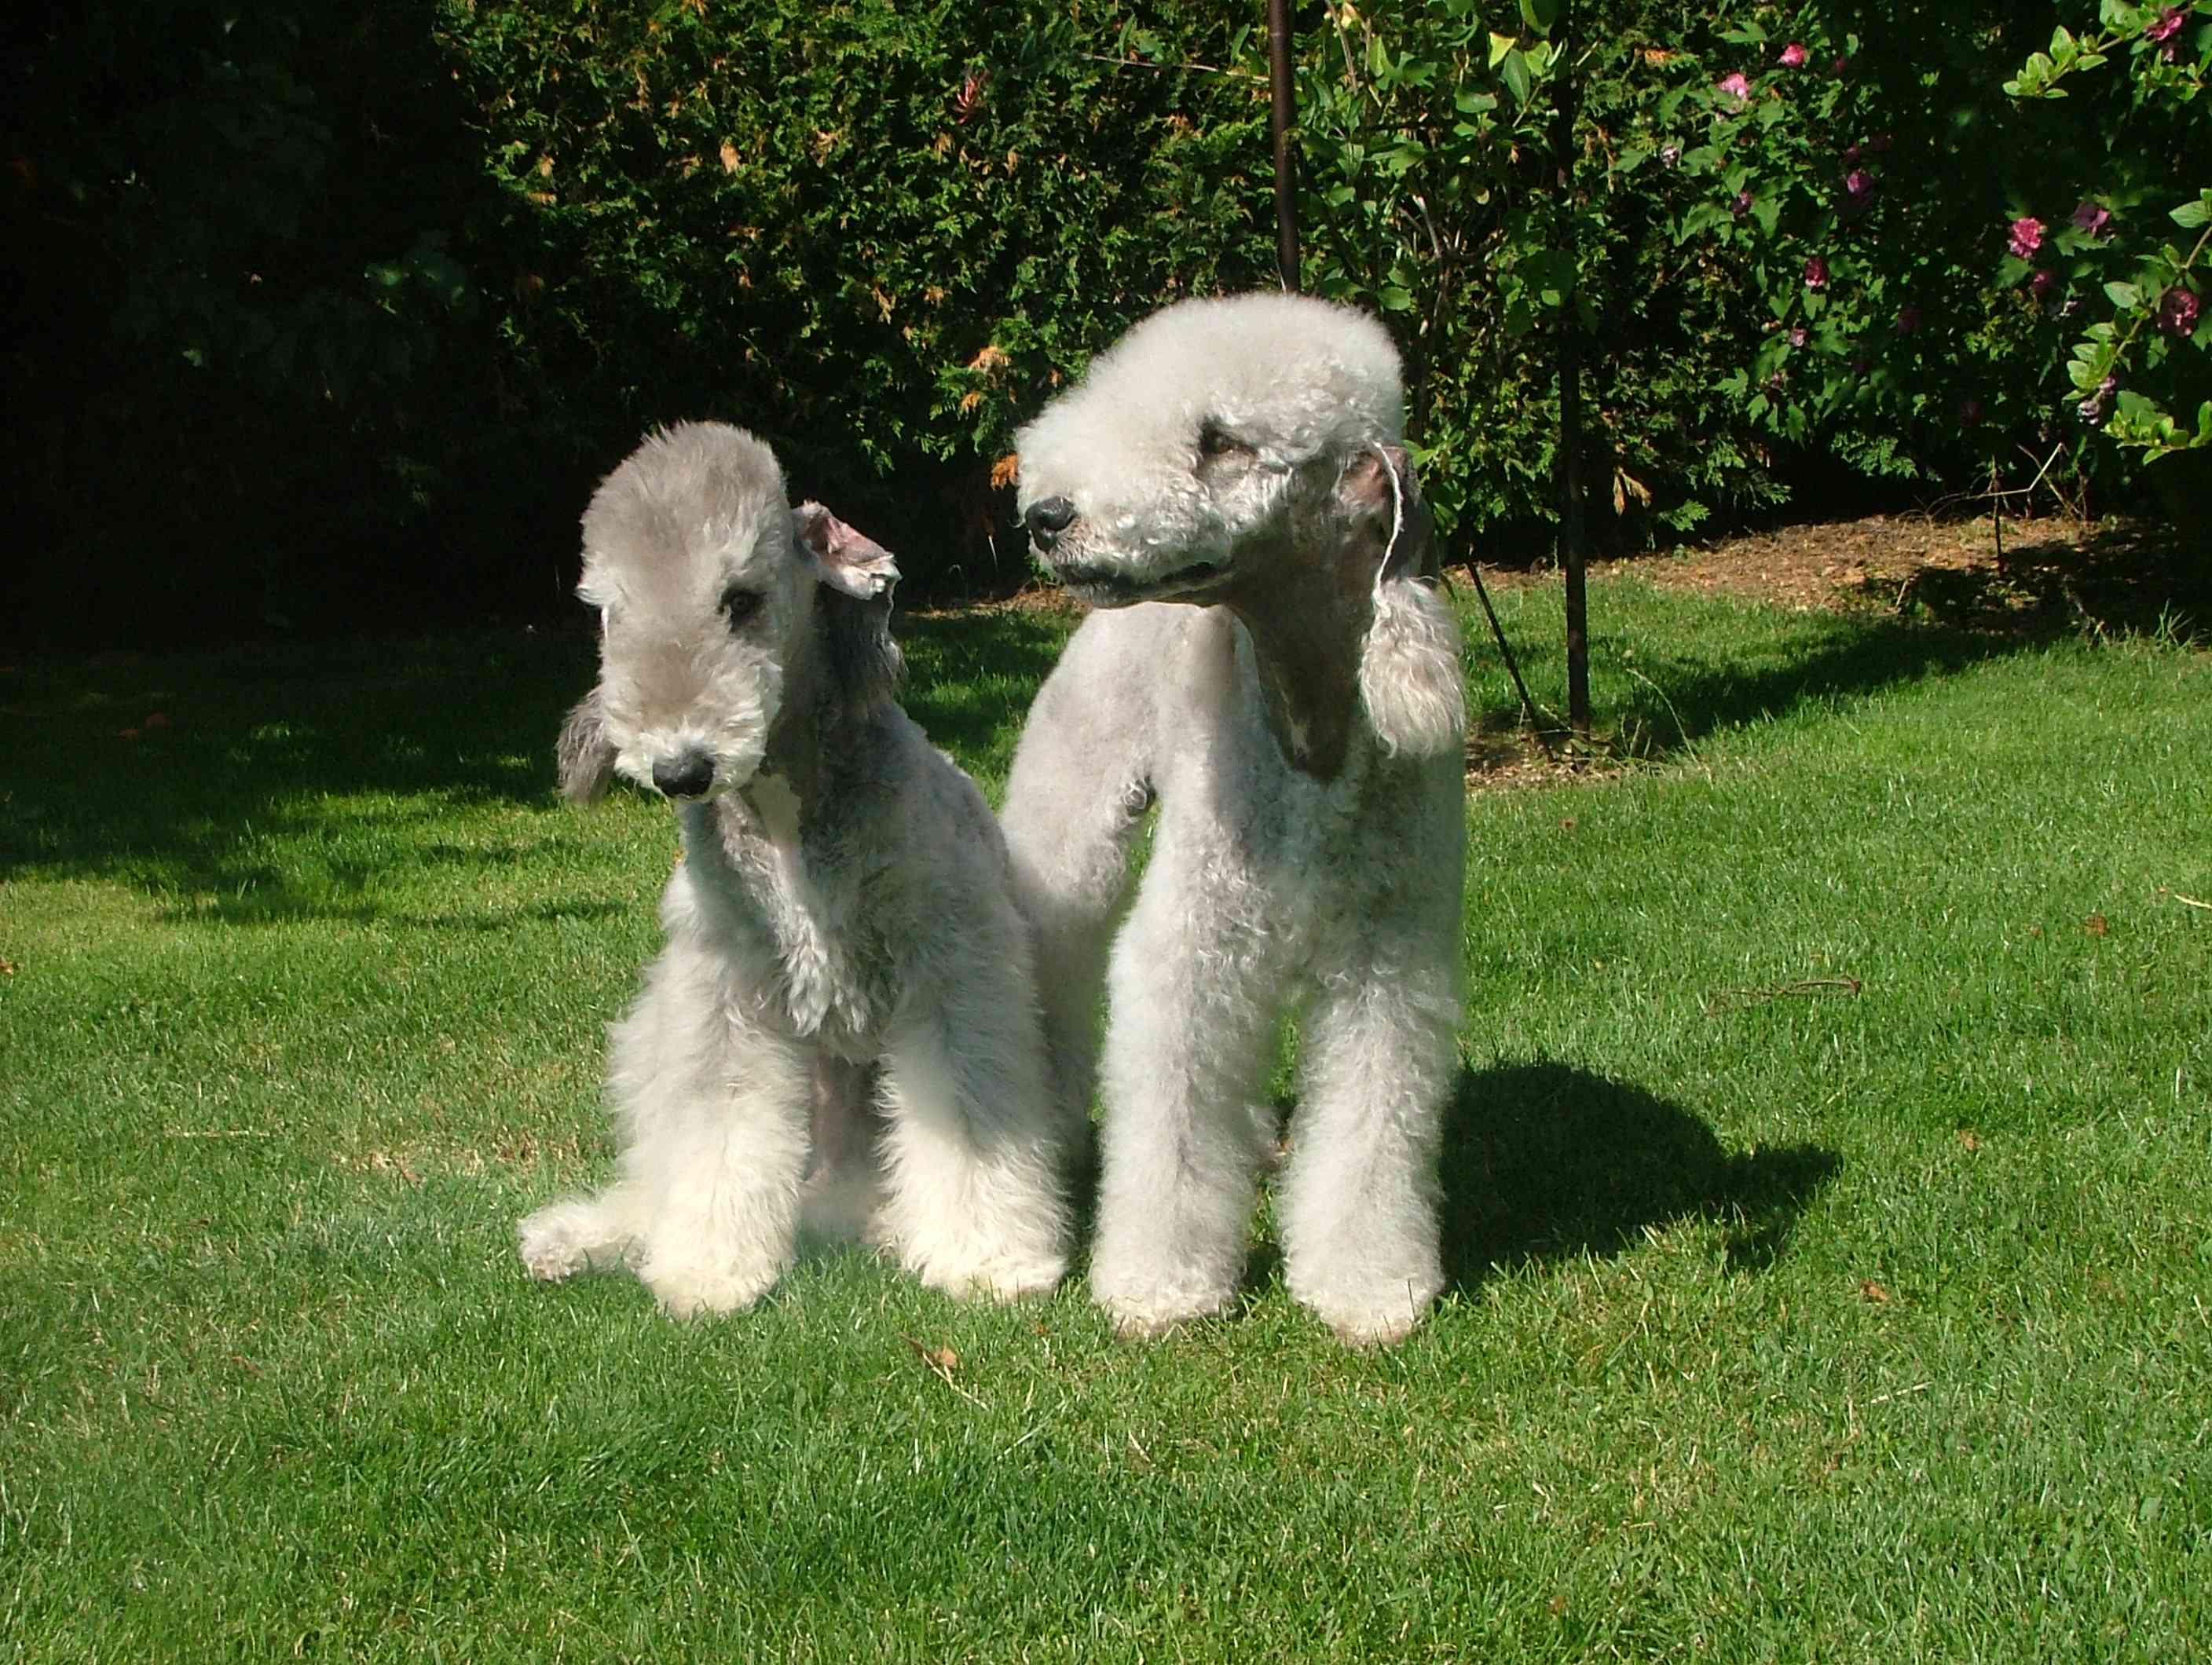 two young Bedlington terriers sitting on a lawn with trees behind them